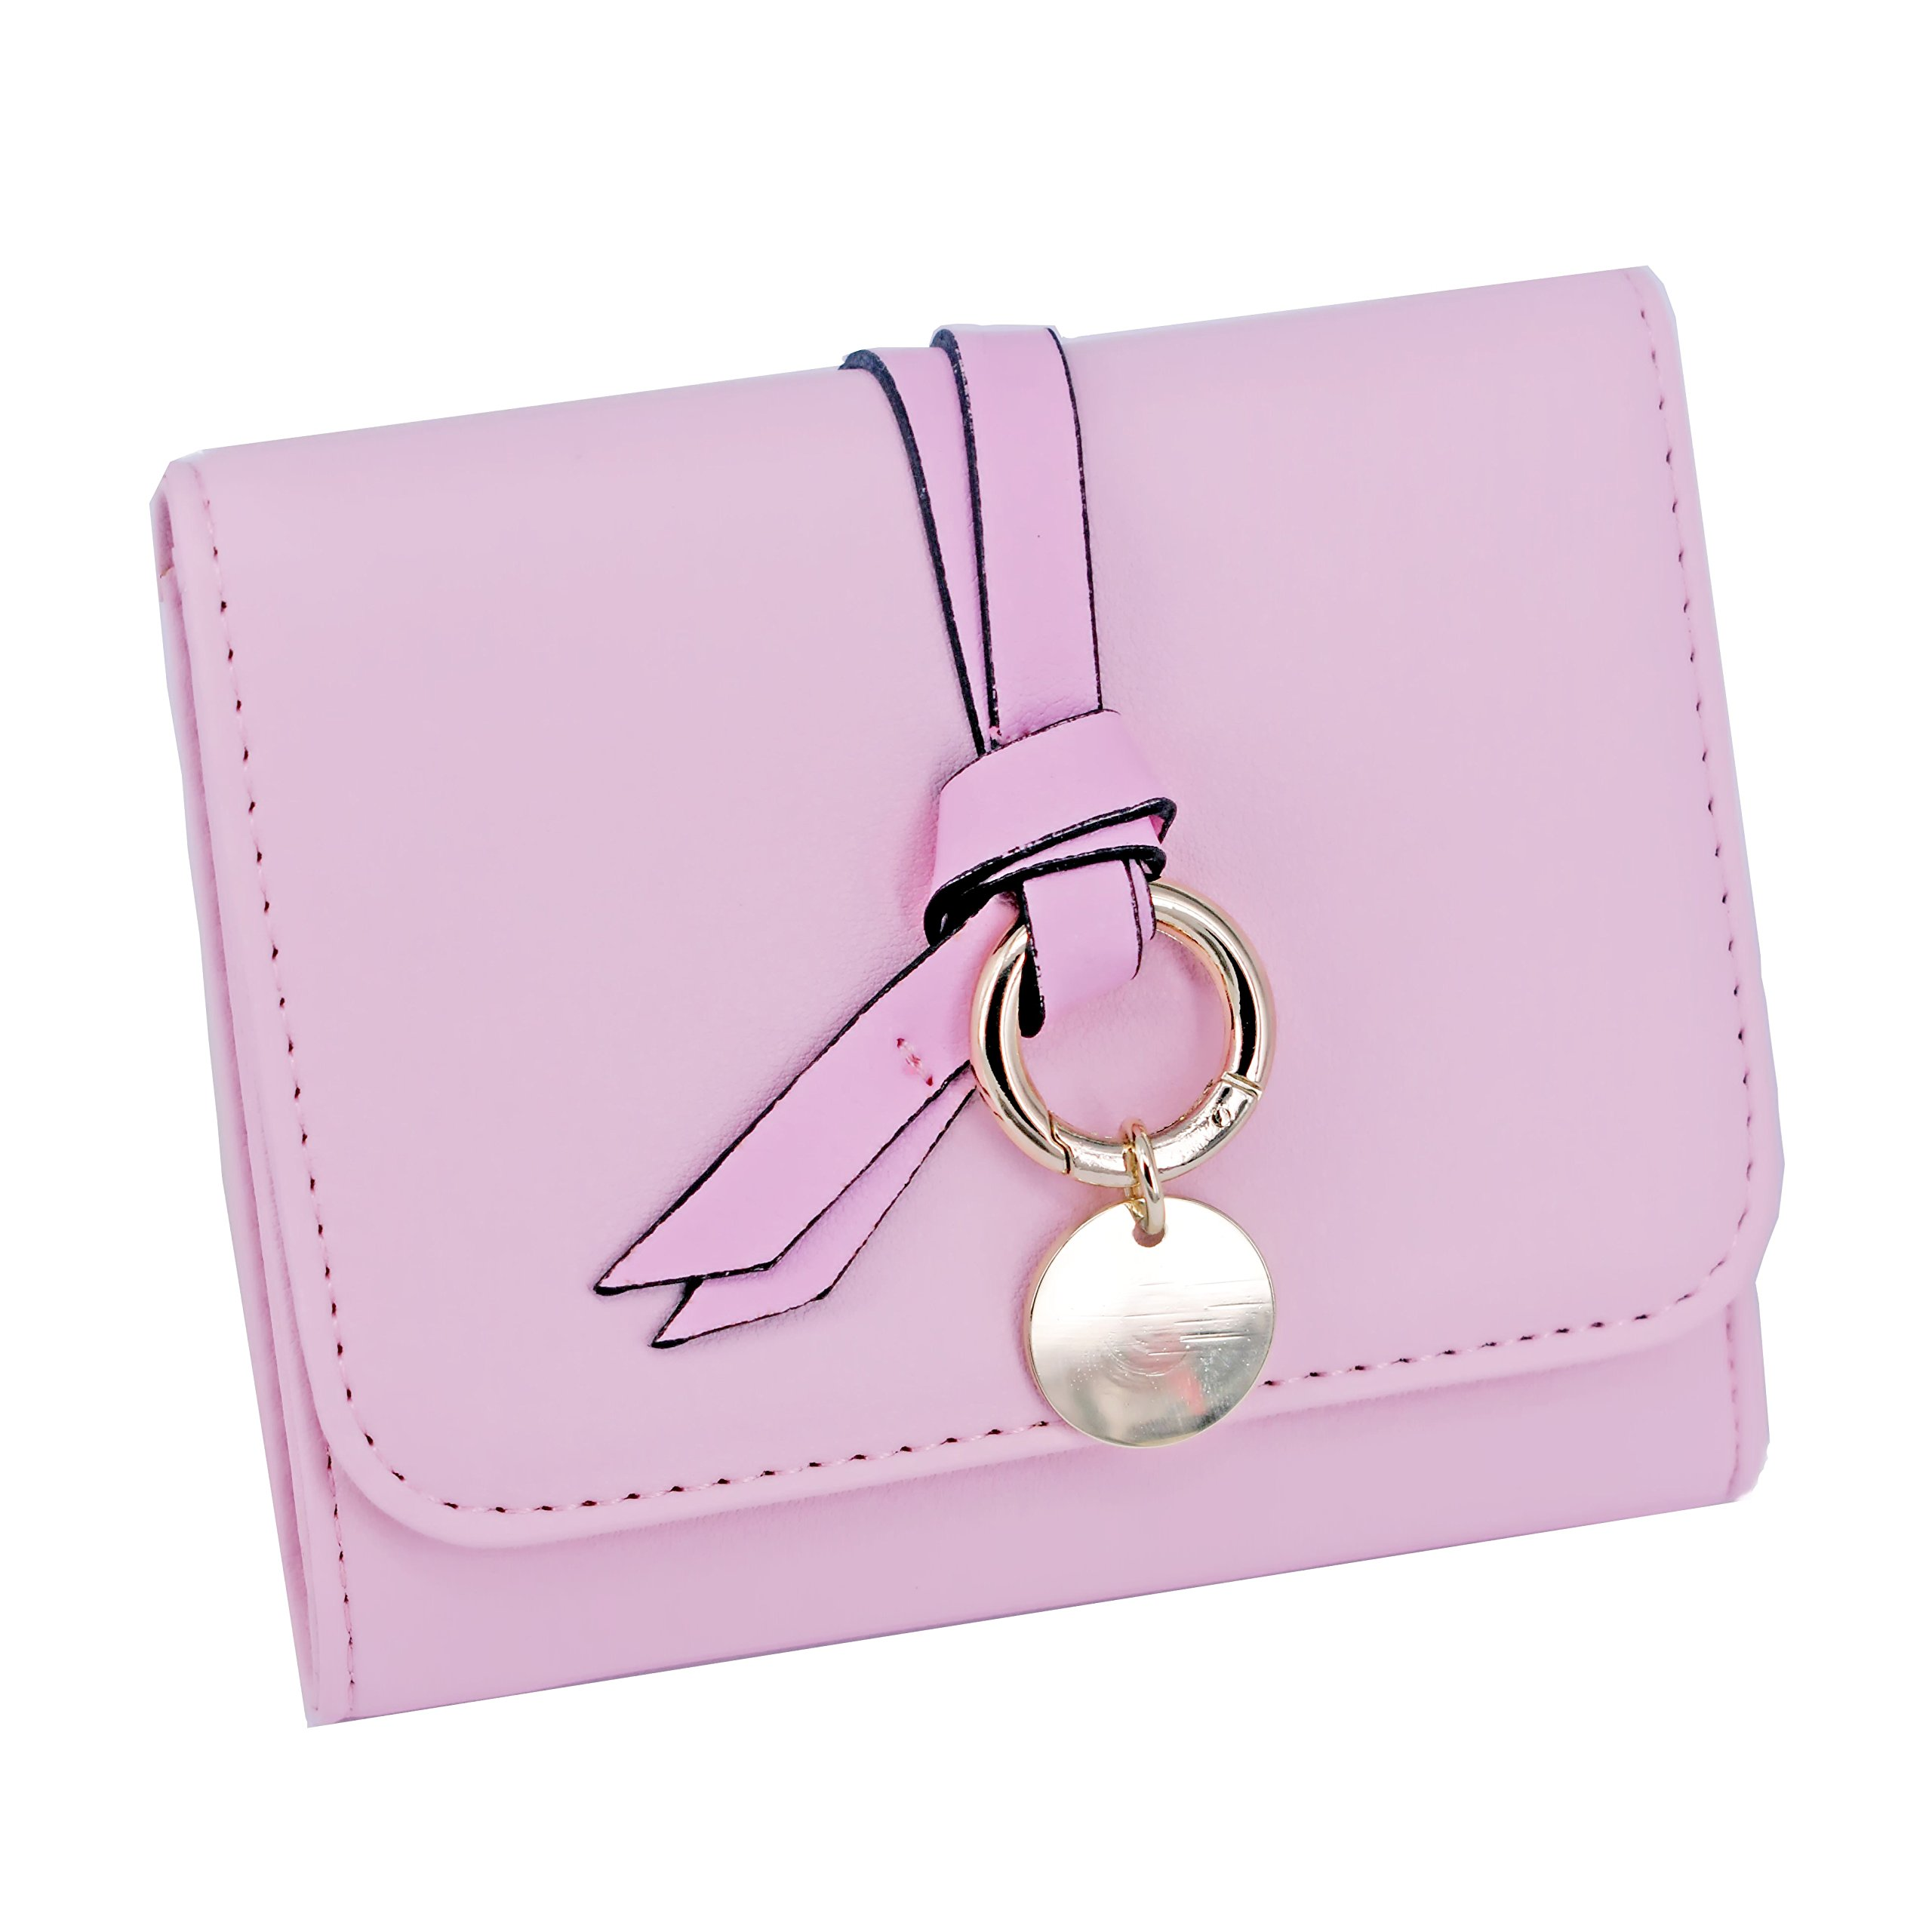 ABC STORY Womens Cute Pink Purse Card Holder Small Trifold Wallets For Teen Girls